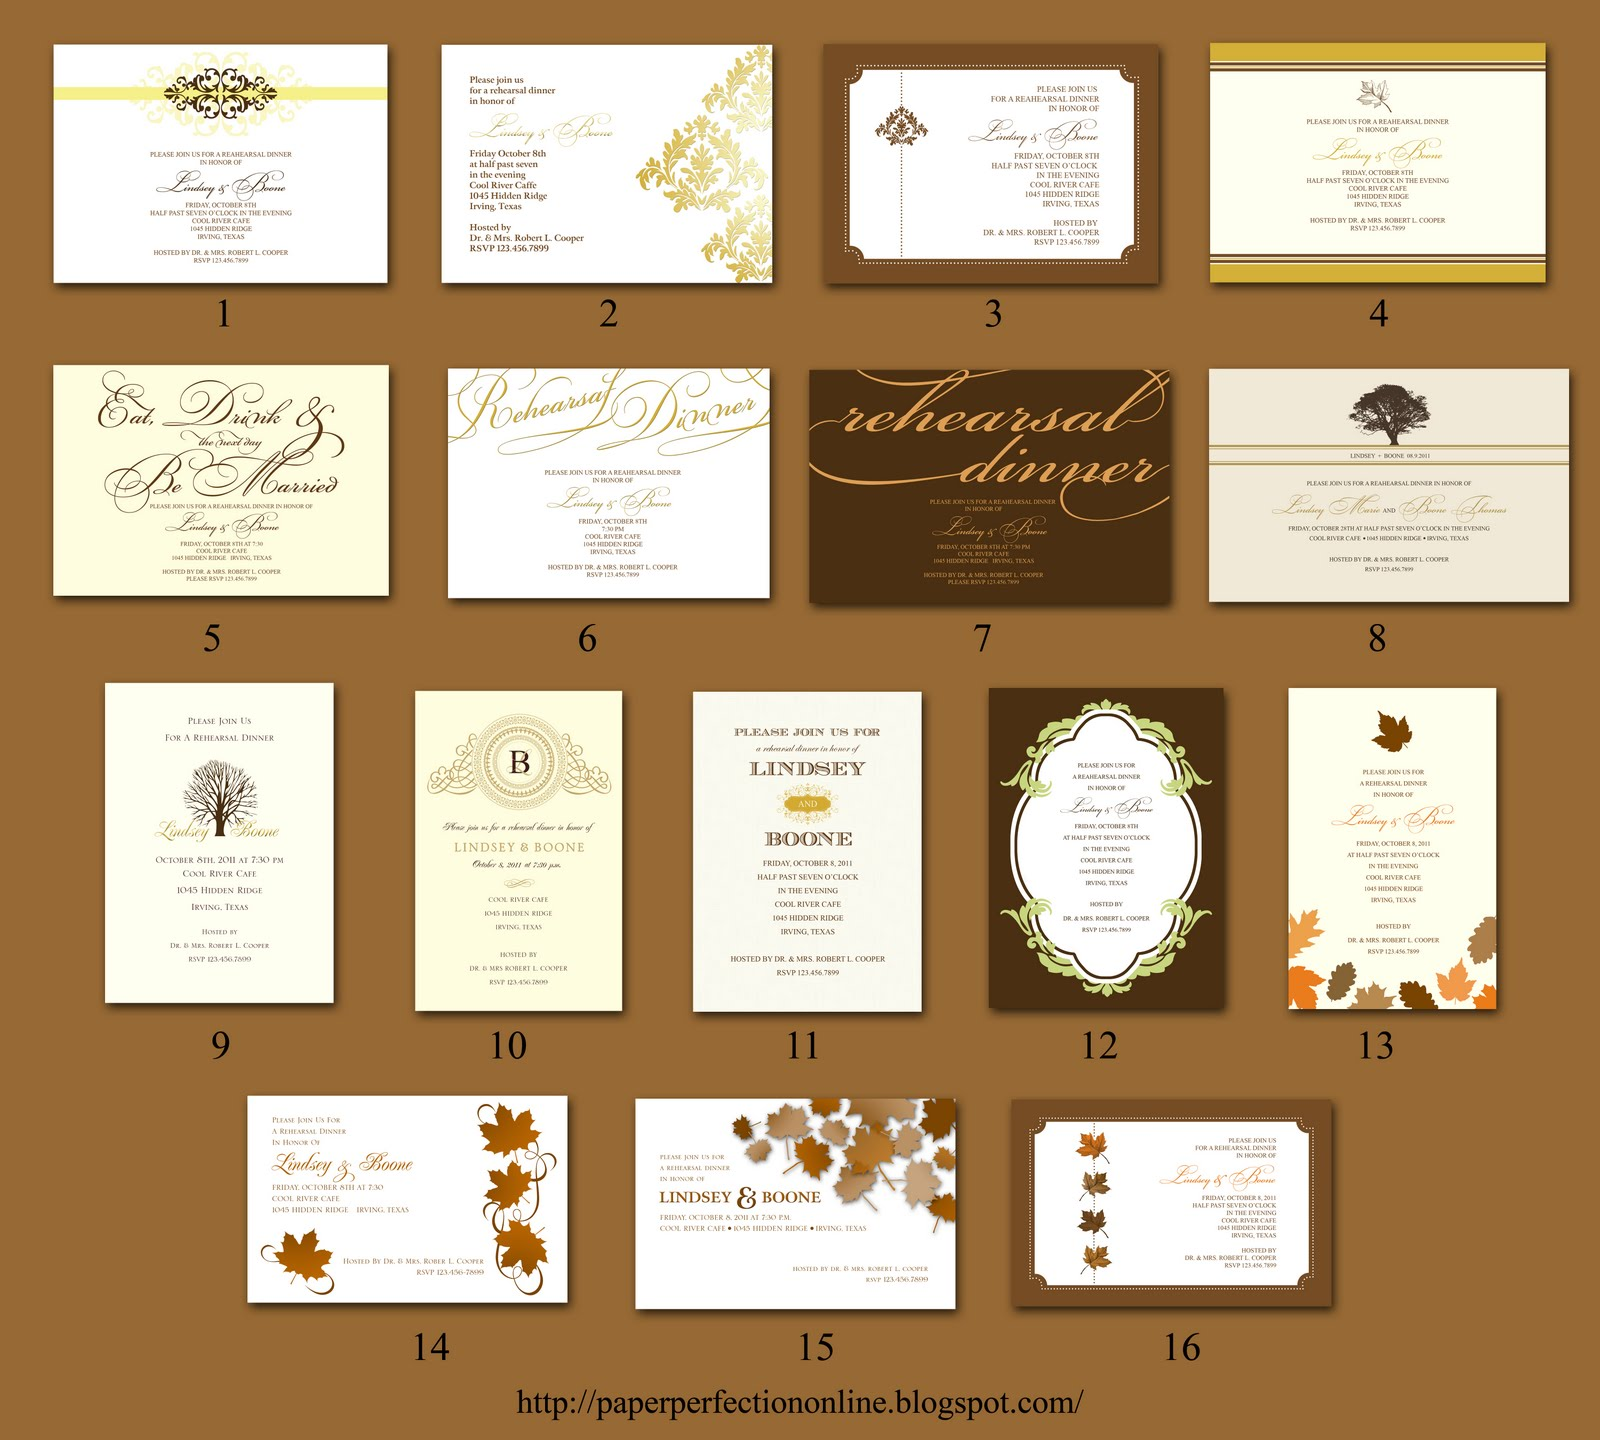 Rehearsal And Rehearsal Dinner Invitations for nice invitations example